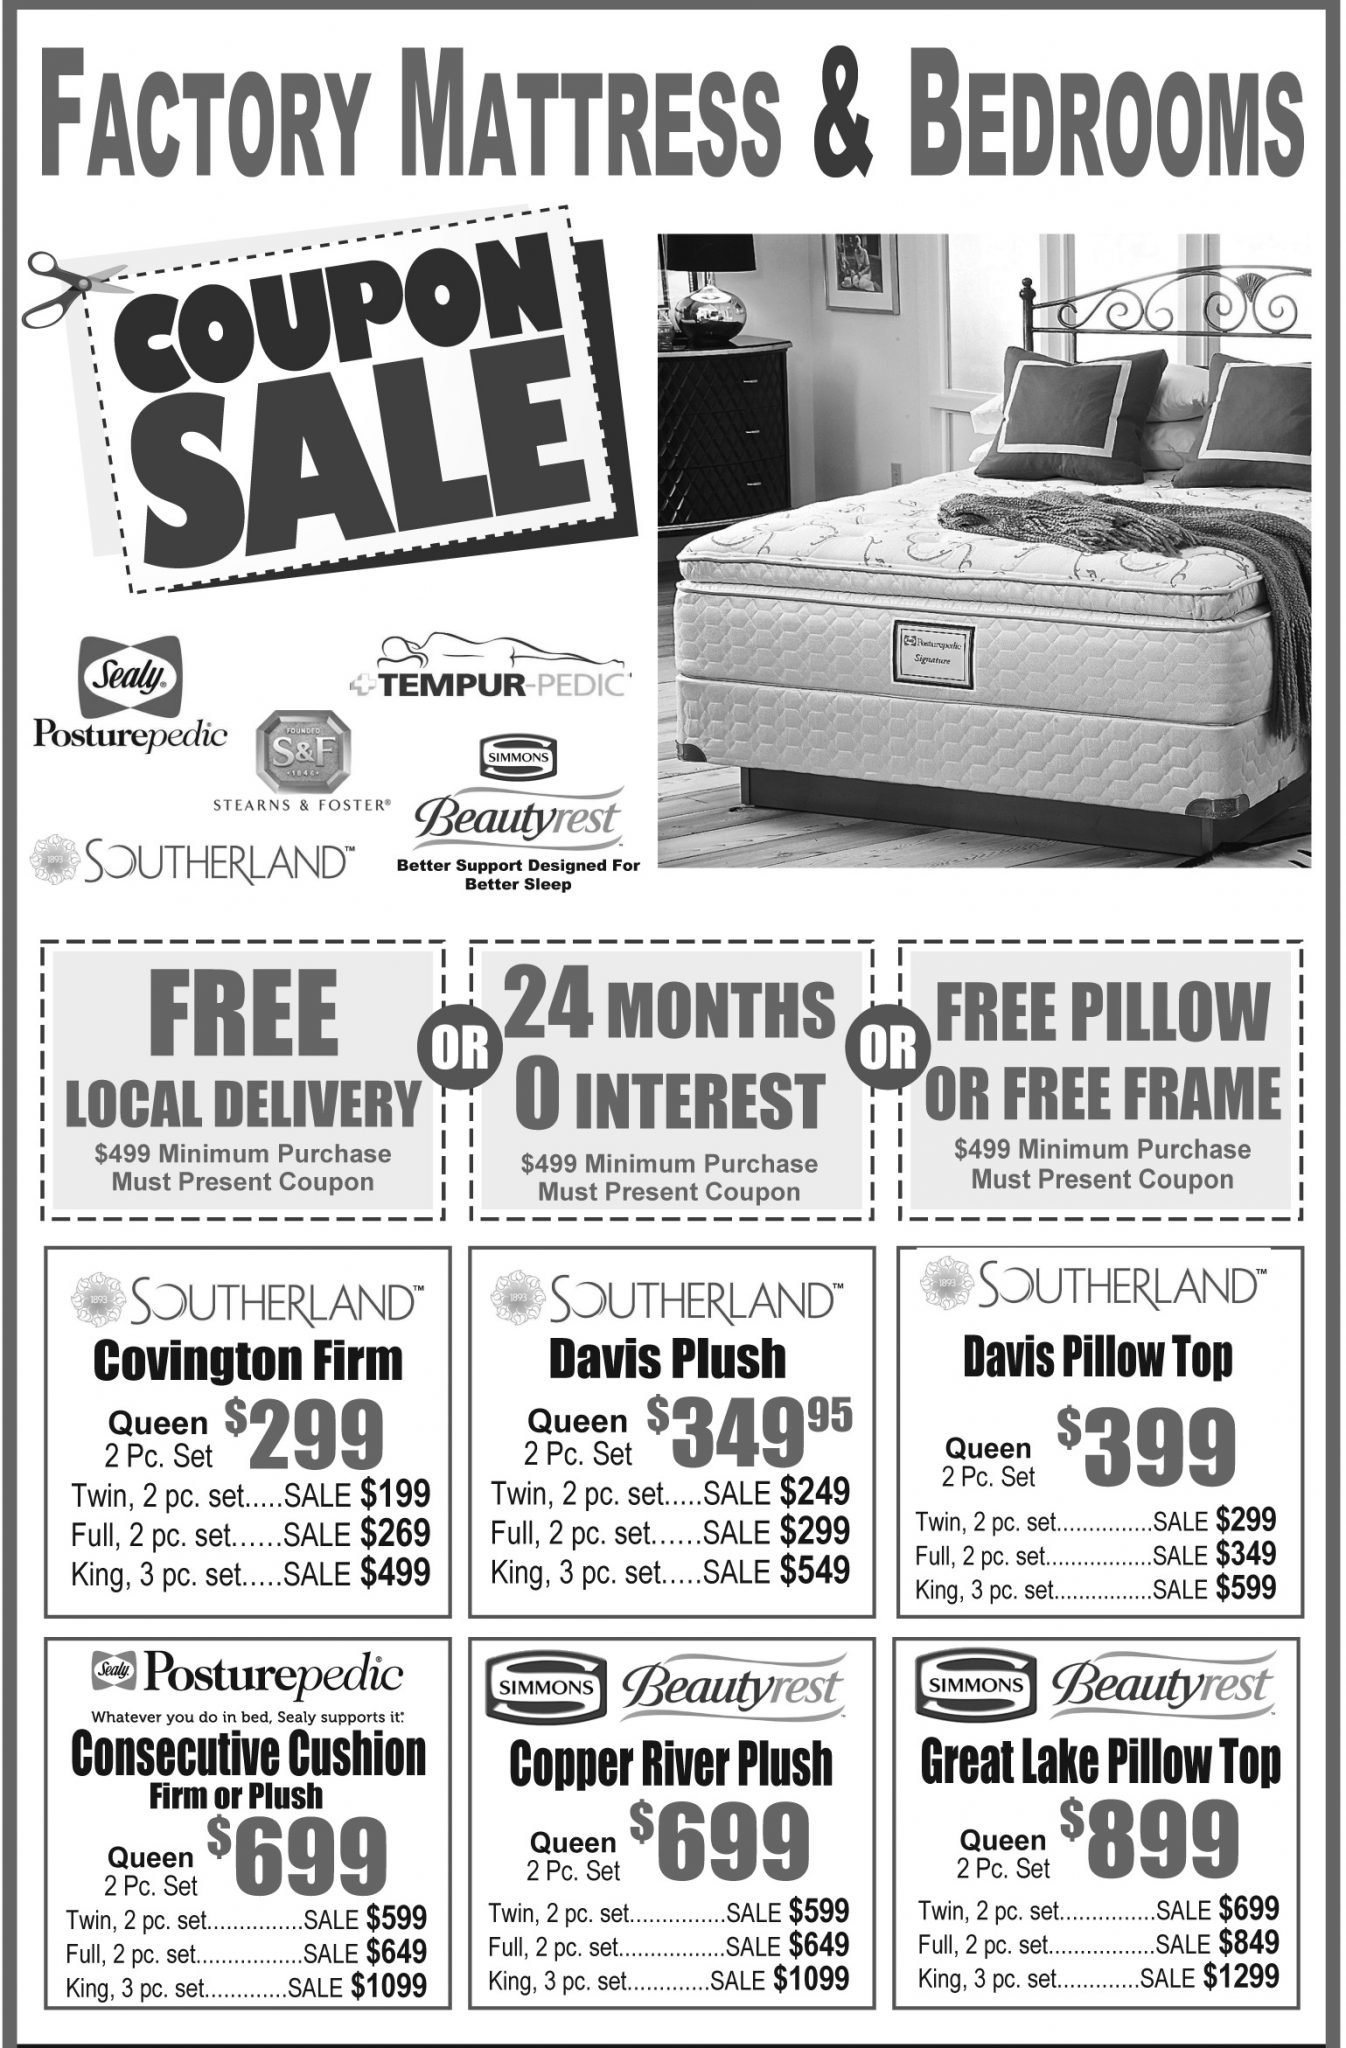 Best Specials Factory Mattress And Bedrooms Mattresses With Pictures